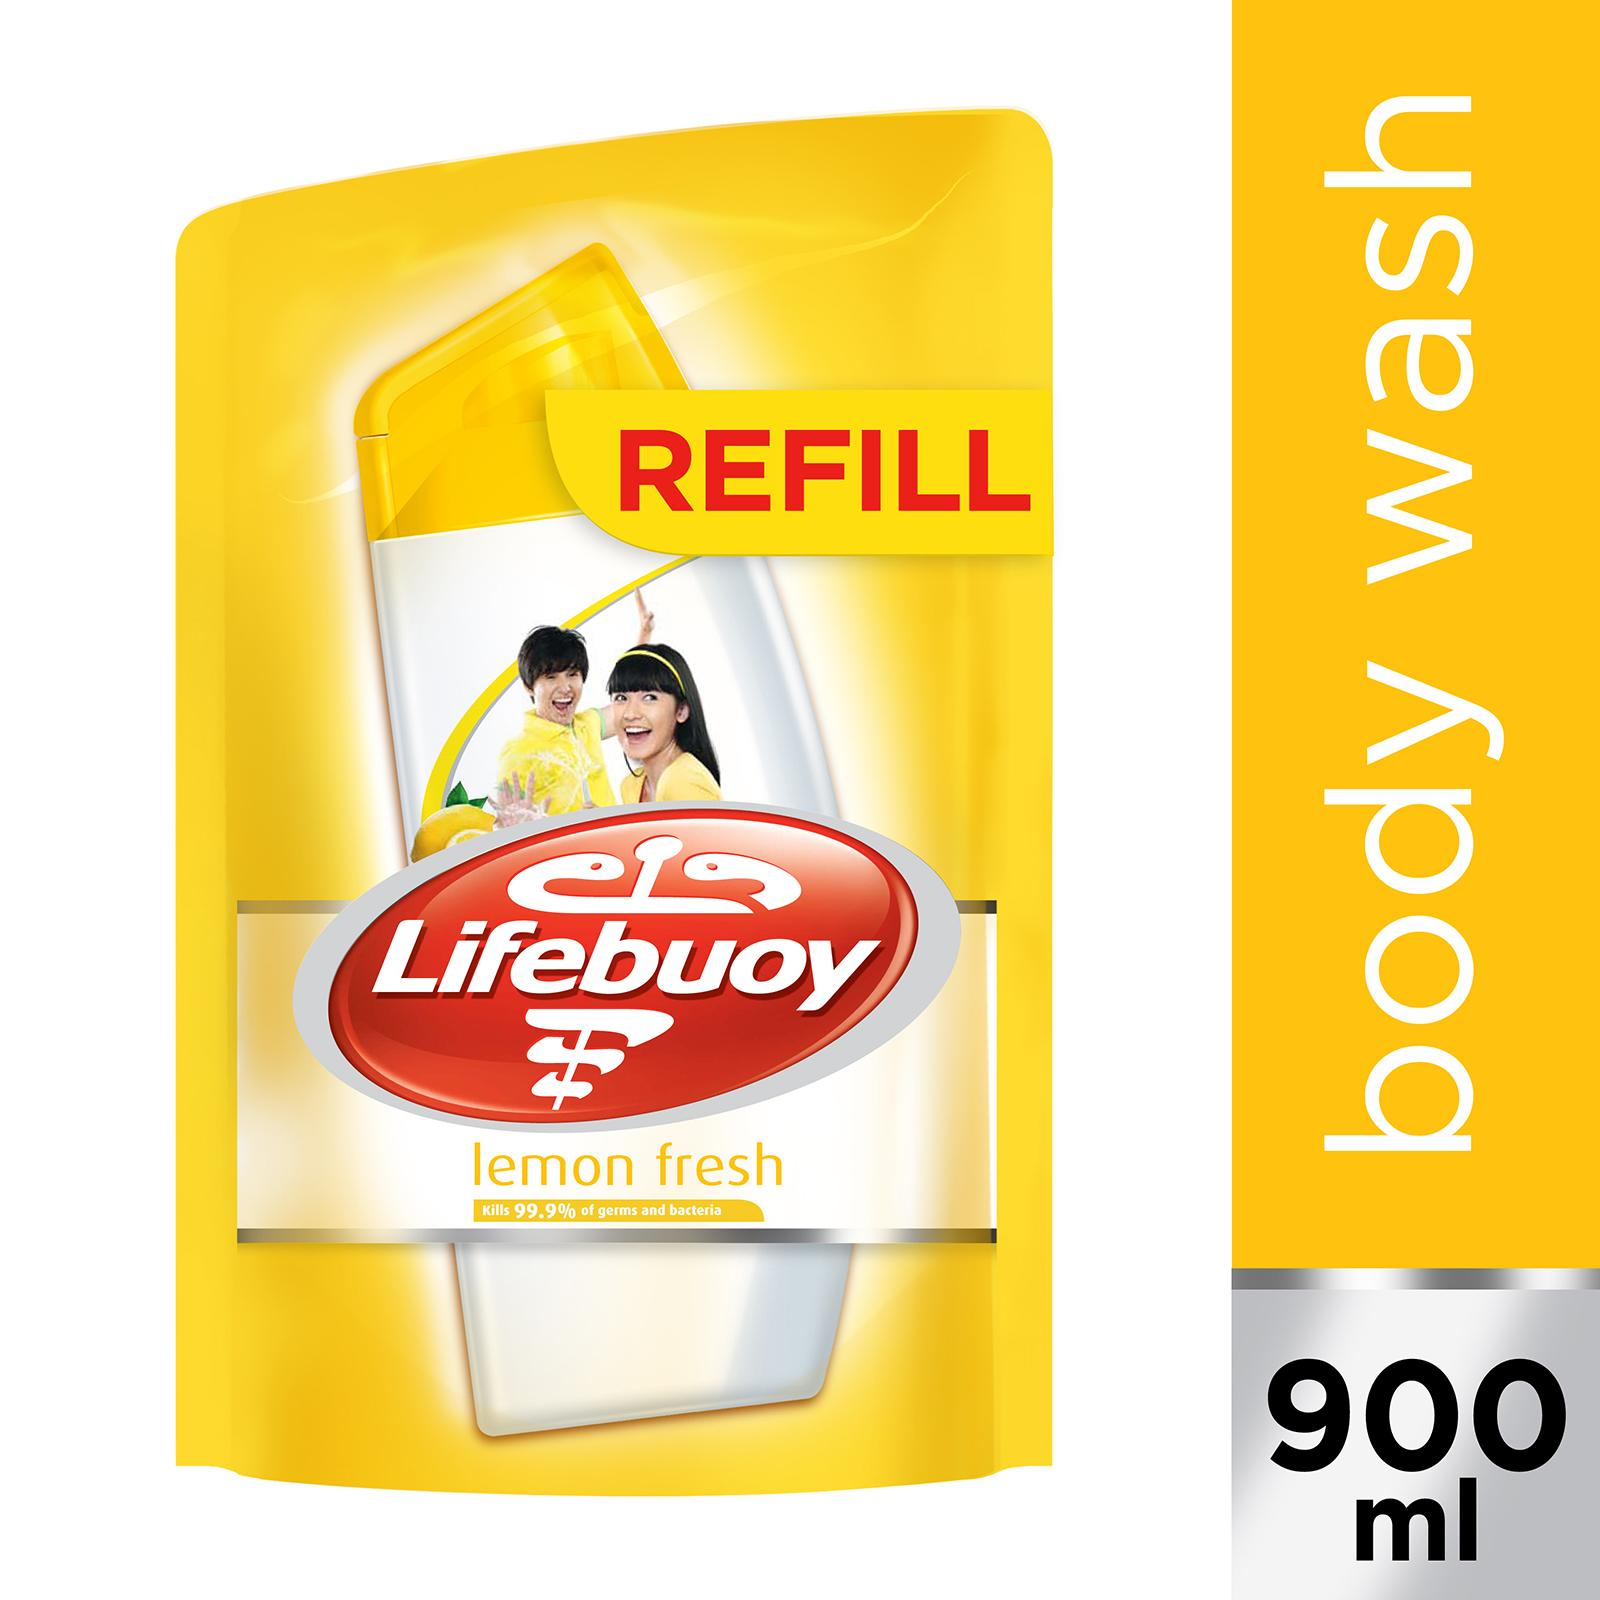 Lifebuoy Lemon Fresh Anti-bacterial Body Wash Refill Pack